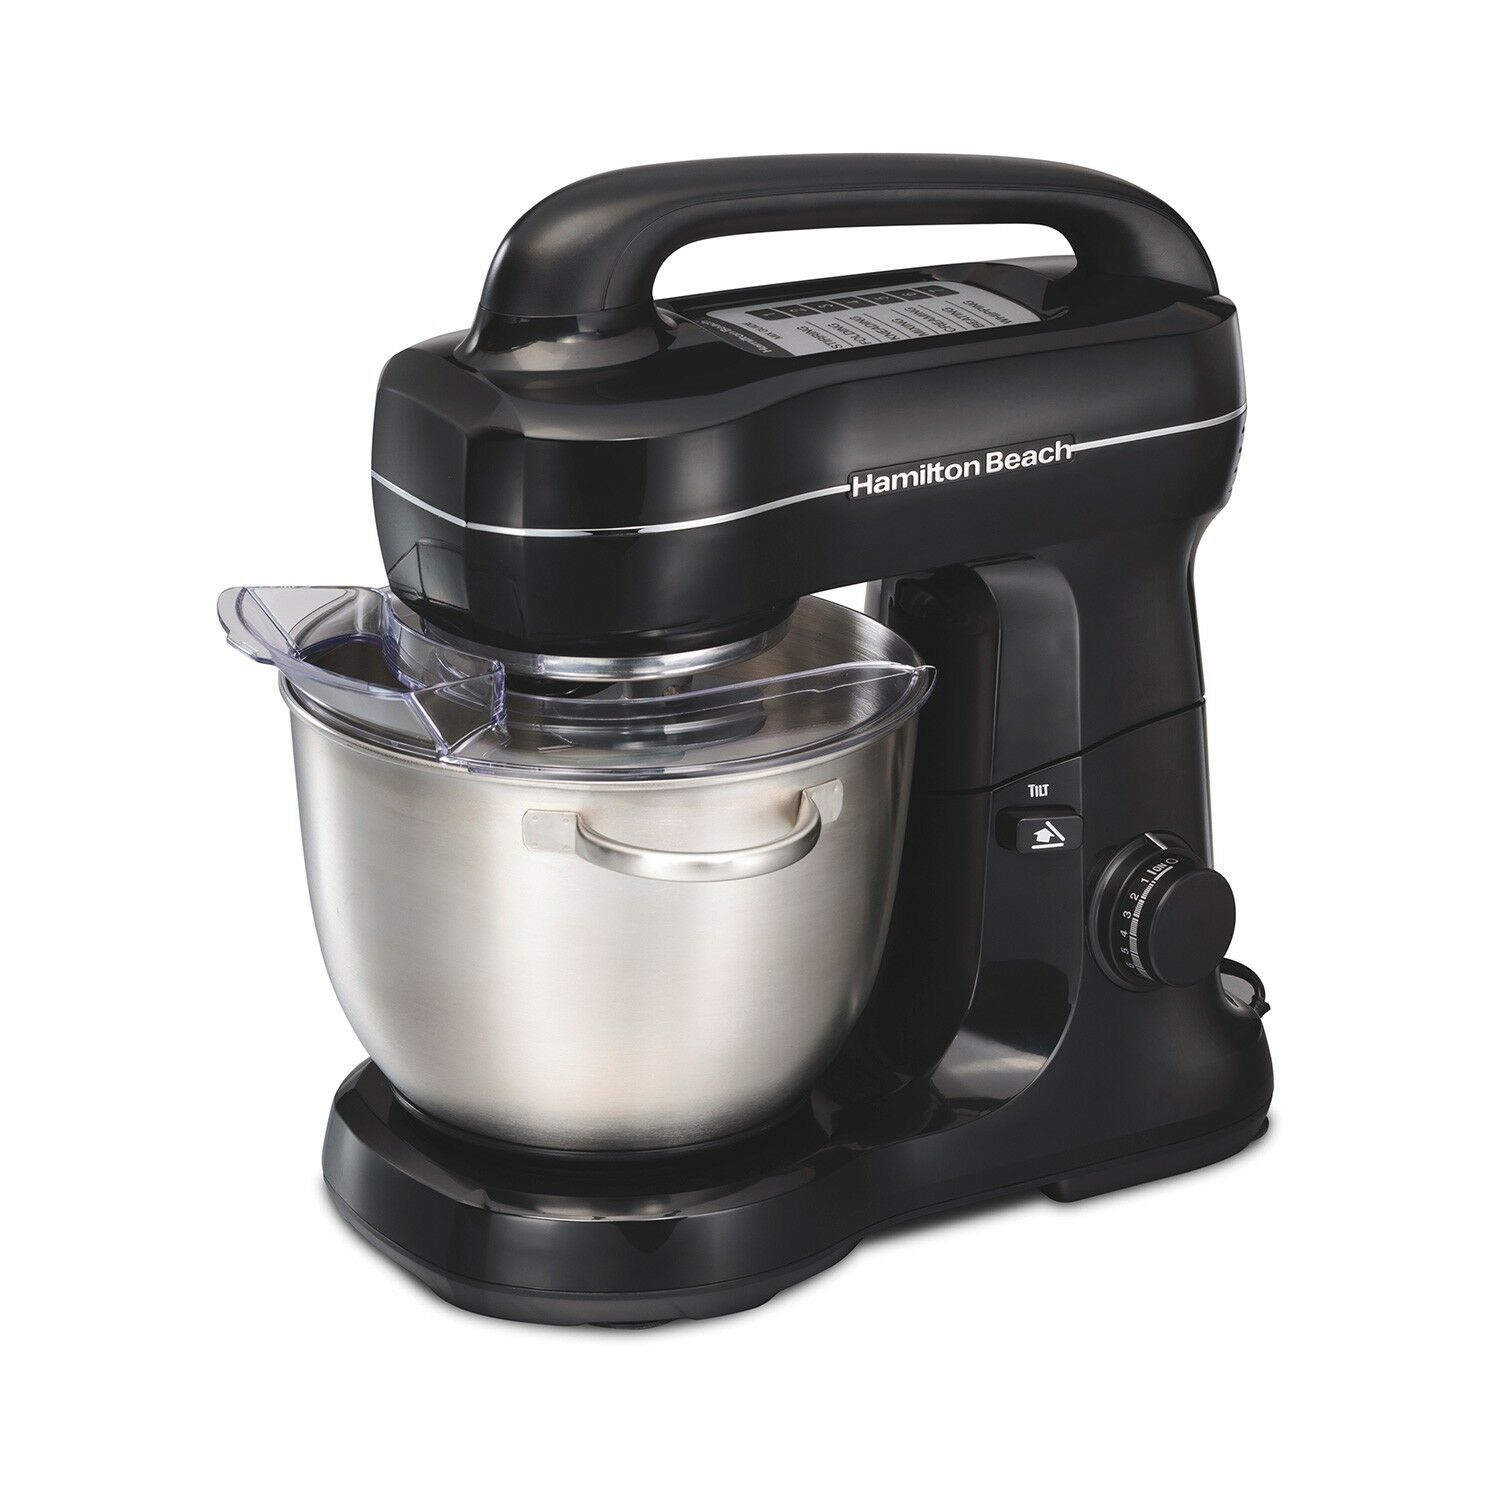 Hamilton Beach Stand 7 Speed Mixer 300 Watt BRAND NEW